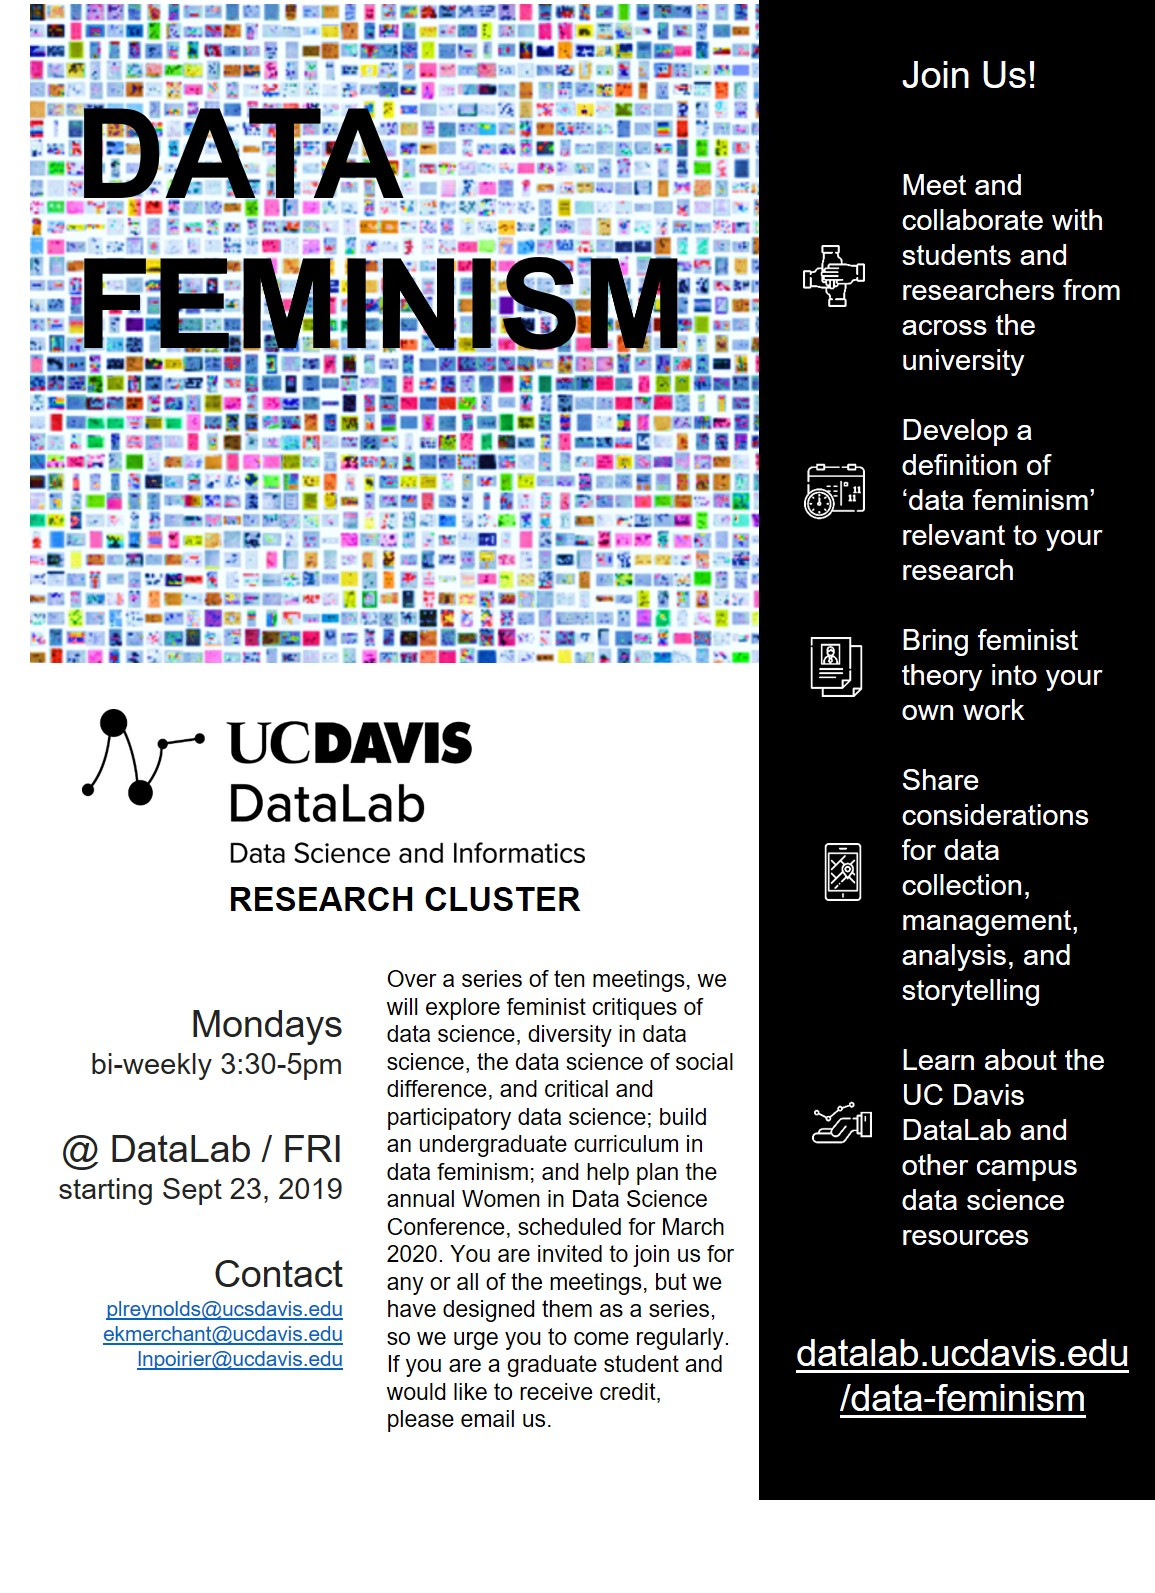 """The featured image is cover art from """"Data Feminism"""" by Catherine D'Ignazio and Lauren Klein."""